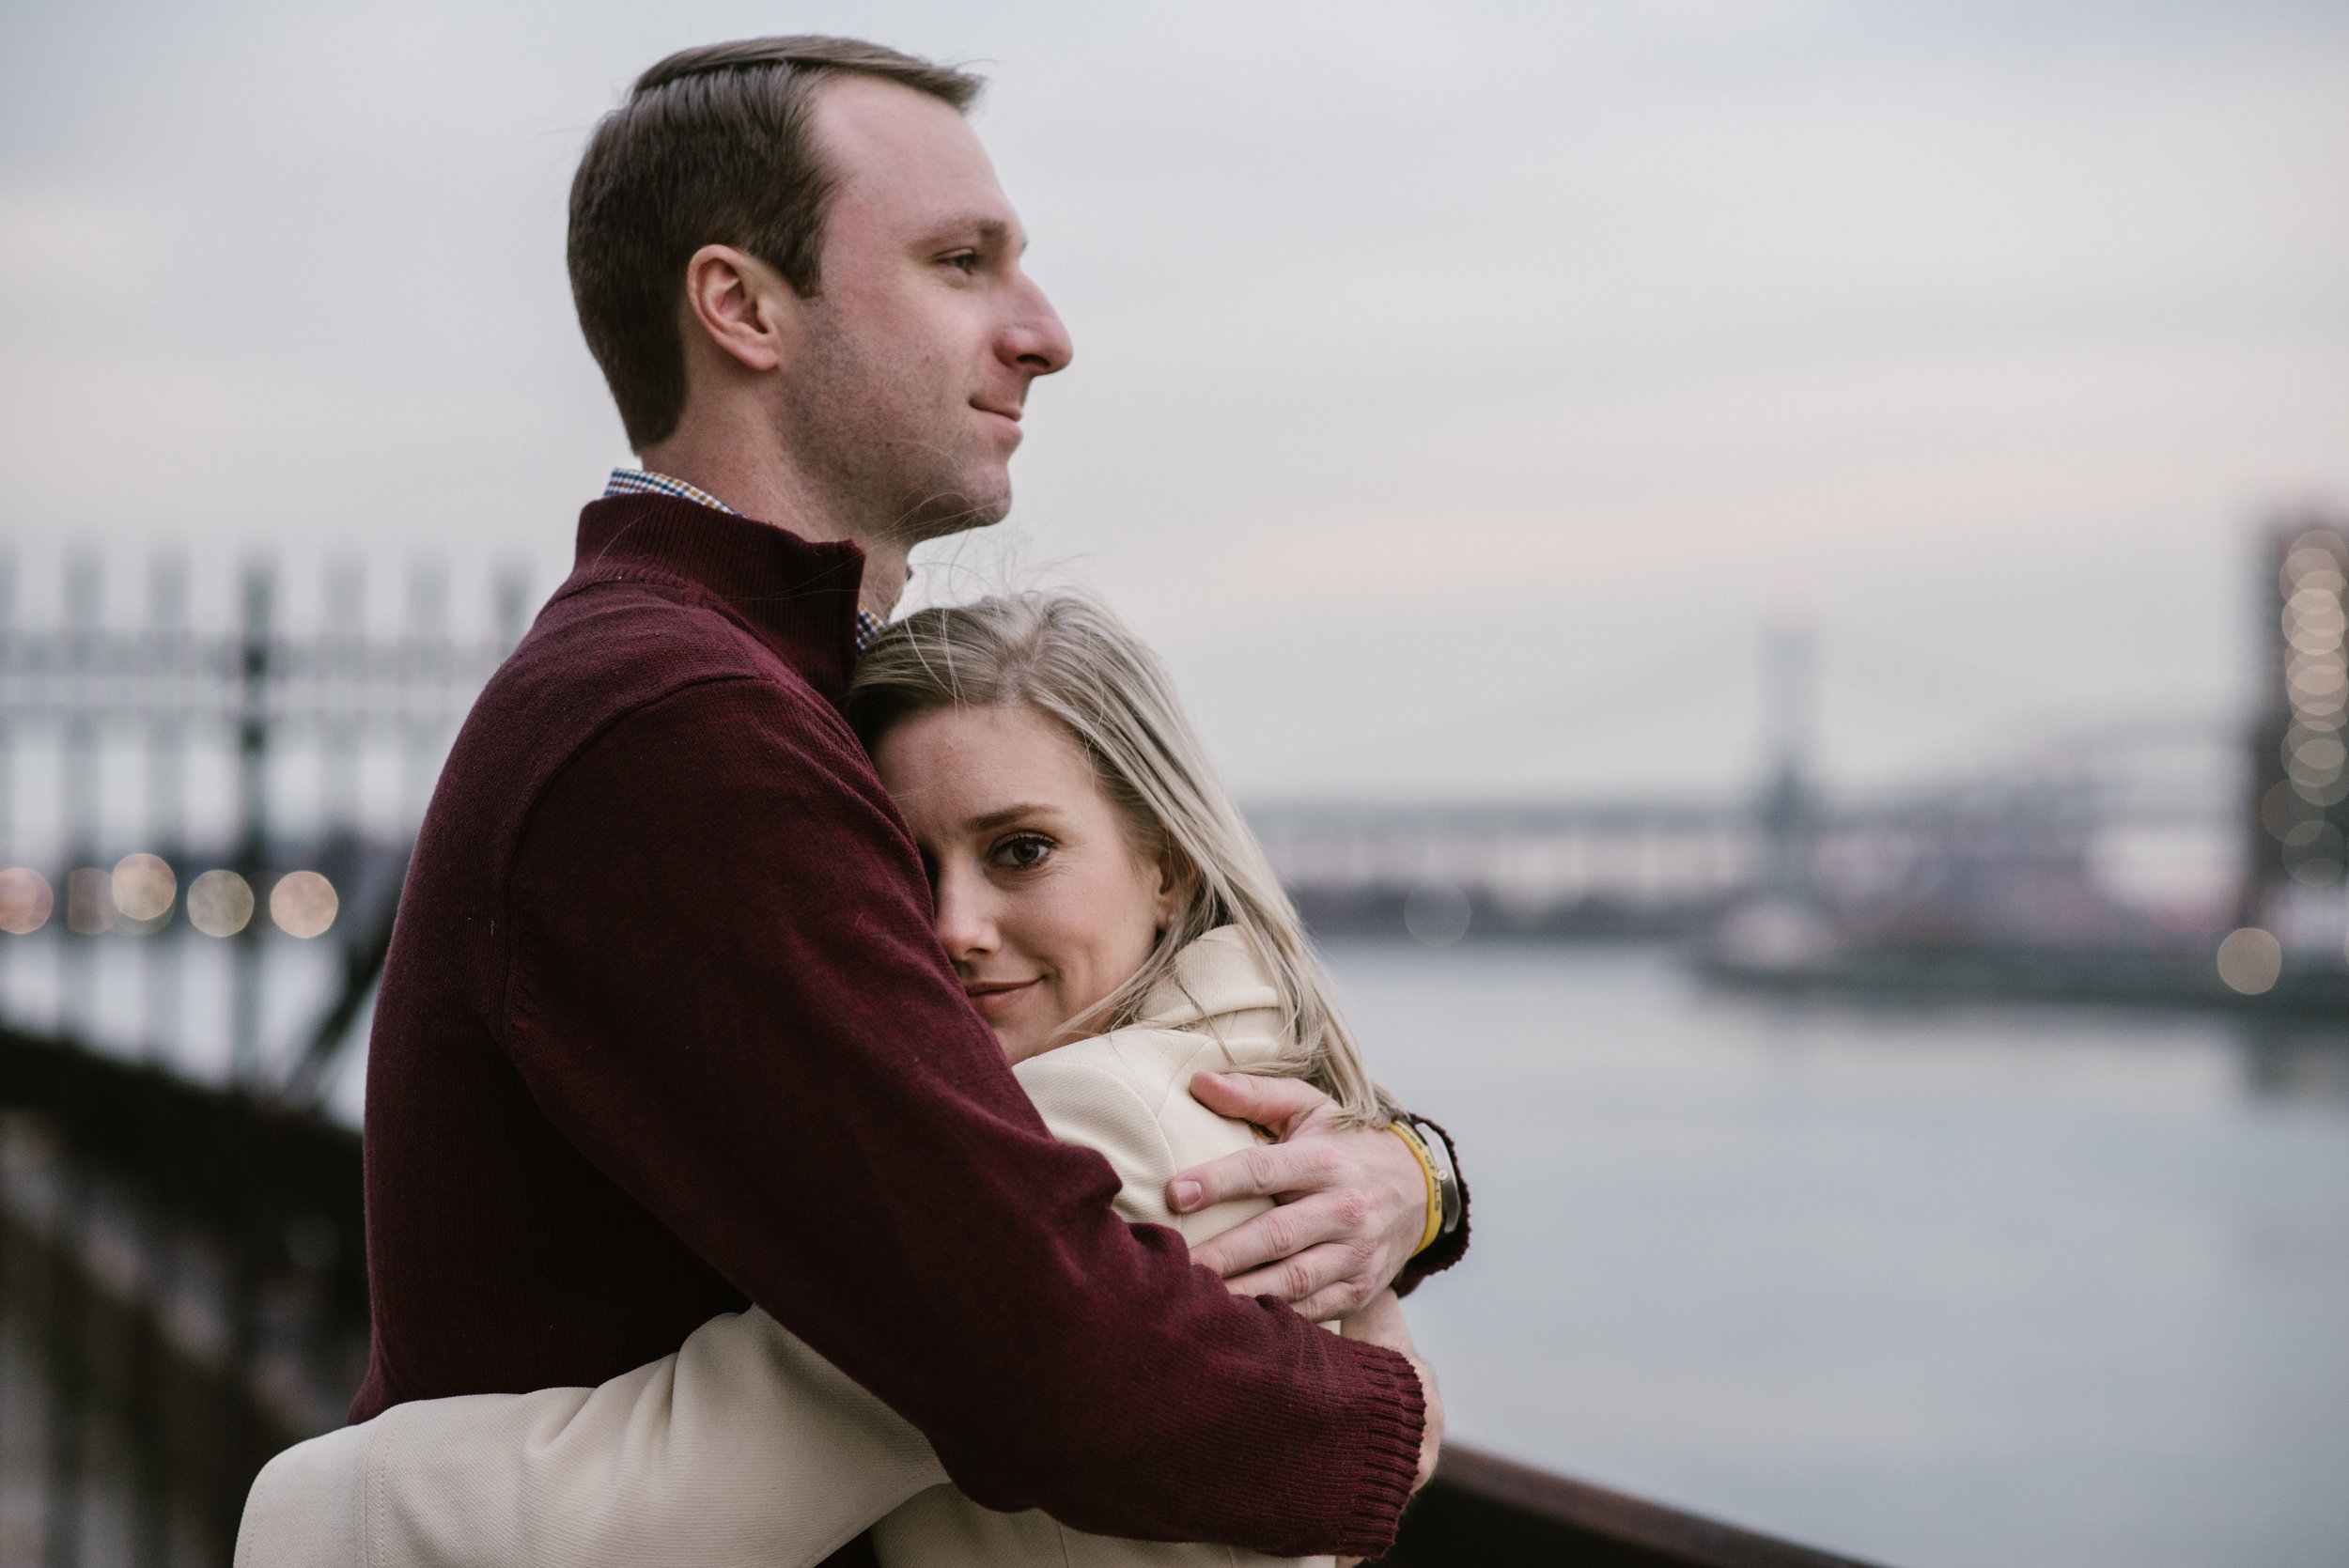 manhattanengagementsession-19.jpg